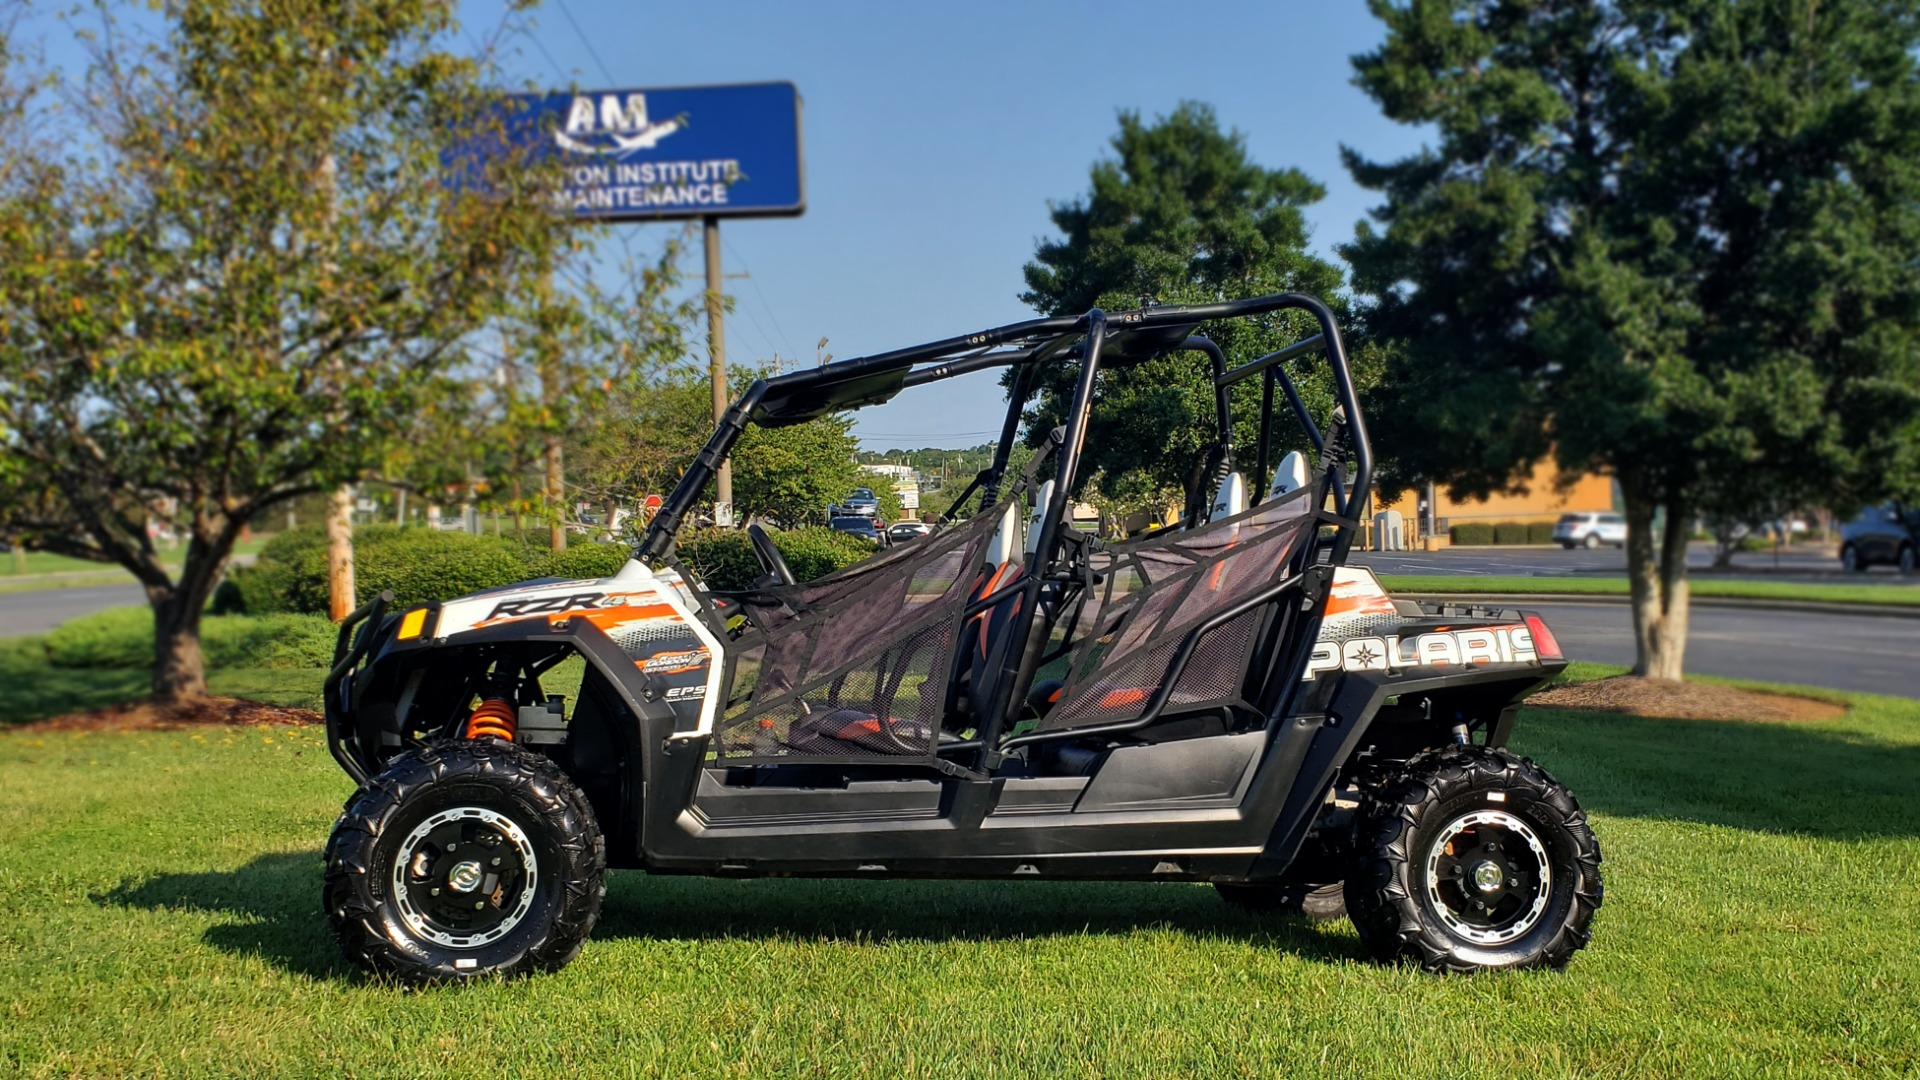 Used 2012 POLARIS RANGER RZR4 / HO 800 EFI / IPHONE CONNECT / SPEAKERS / NEW TIRES for sale Sold at Formula Imports in Charlotte NC 28227 5